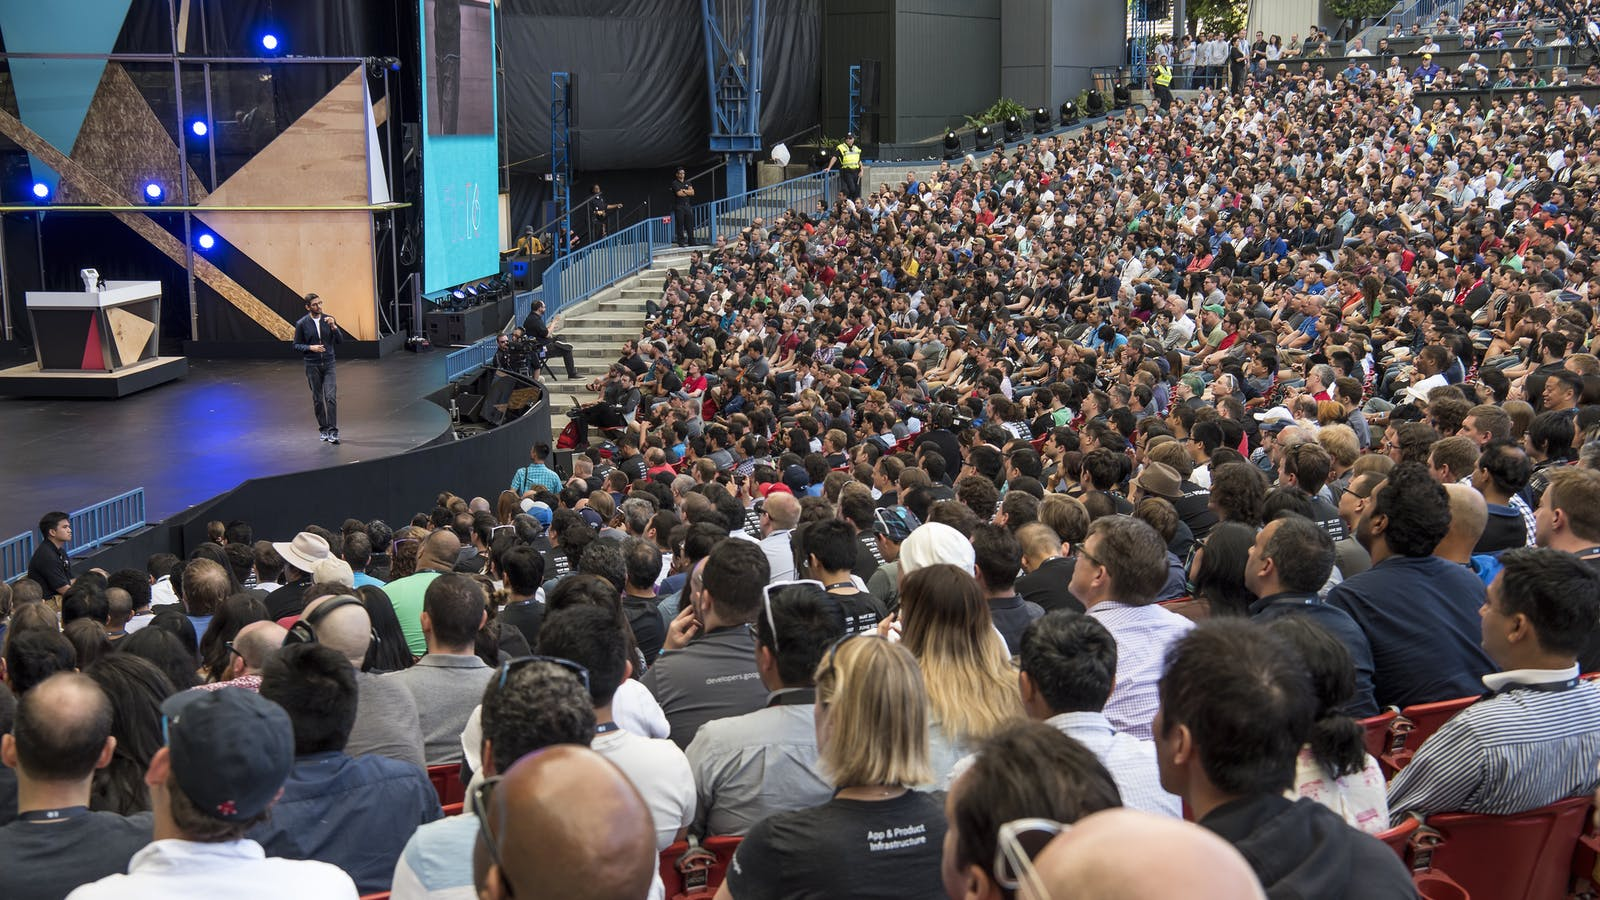 Google CEO Sundar Pichai on stage at Google I/O this month. Photo by Bloomberg.